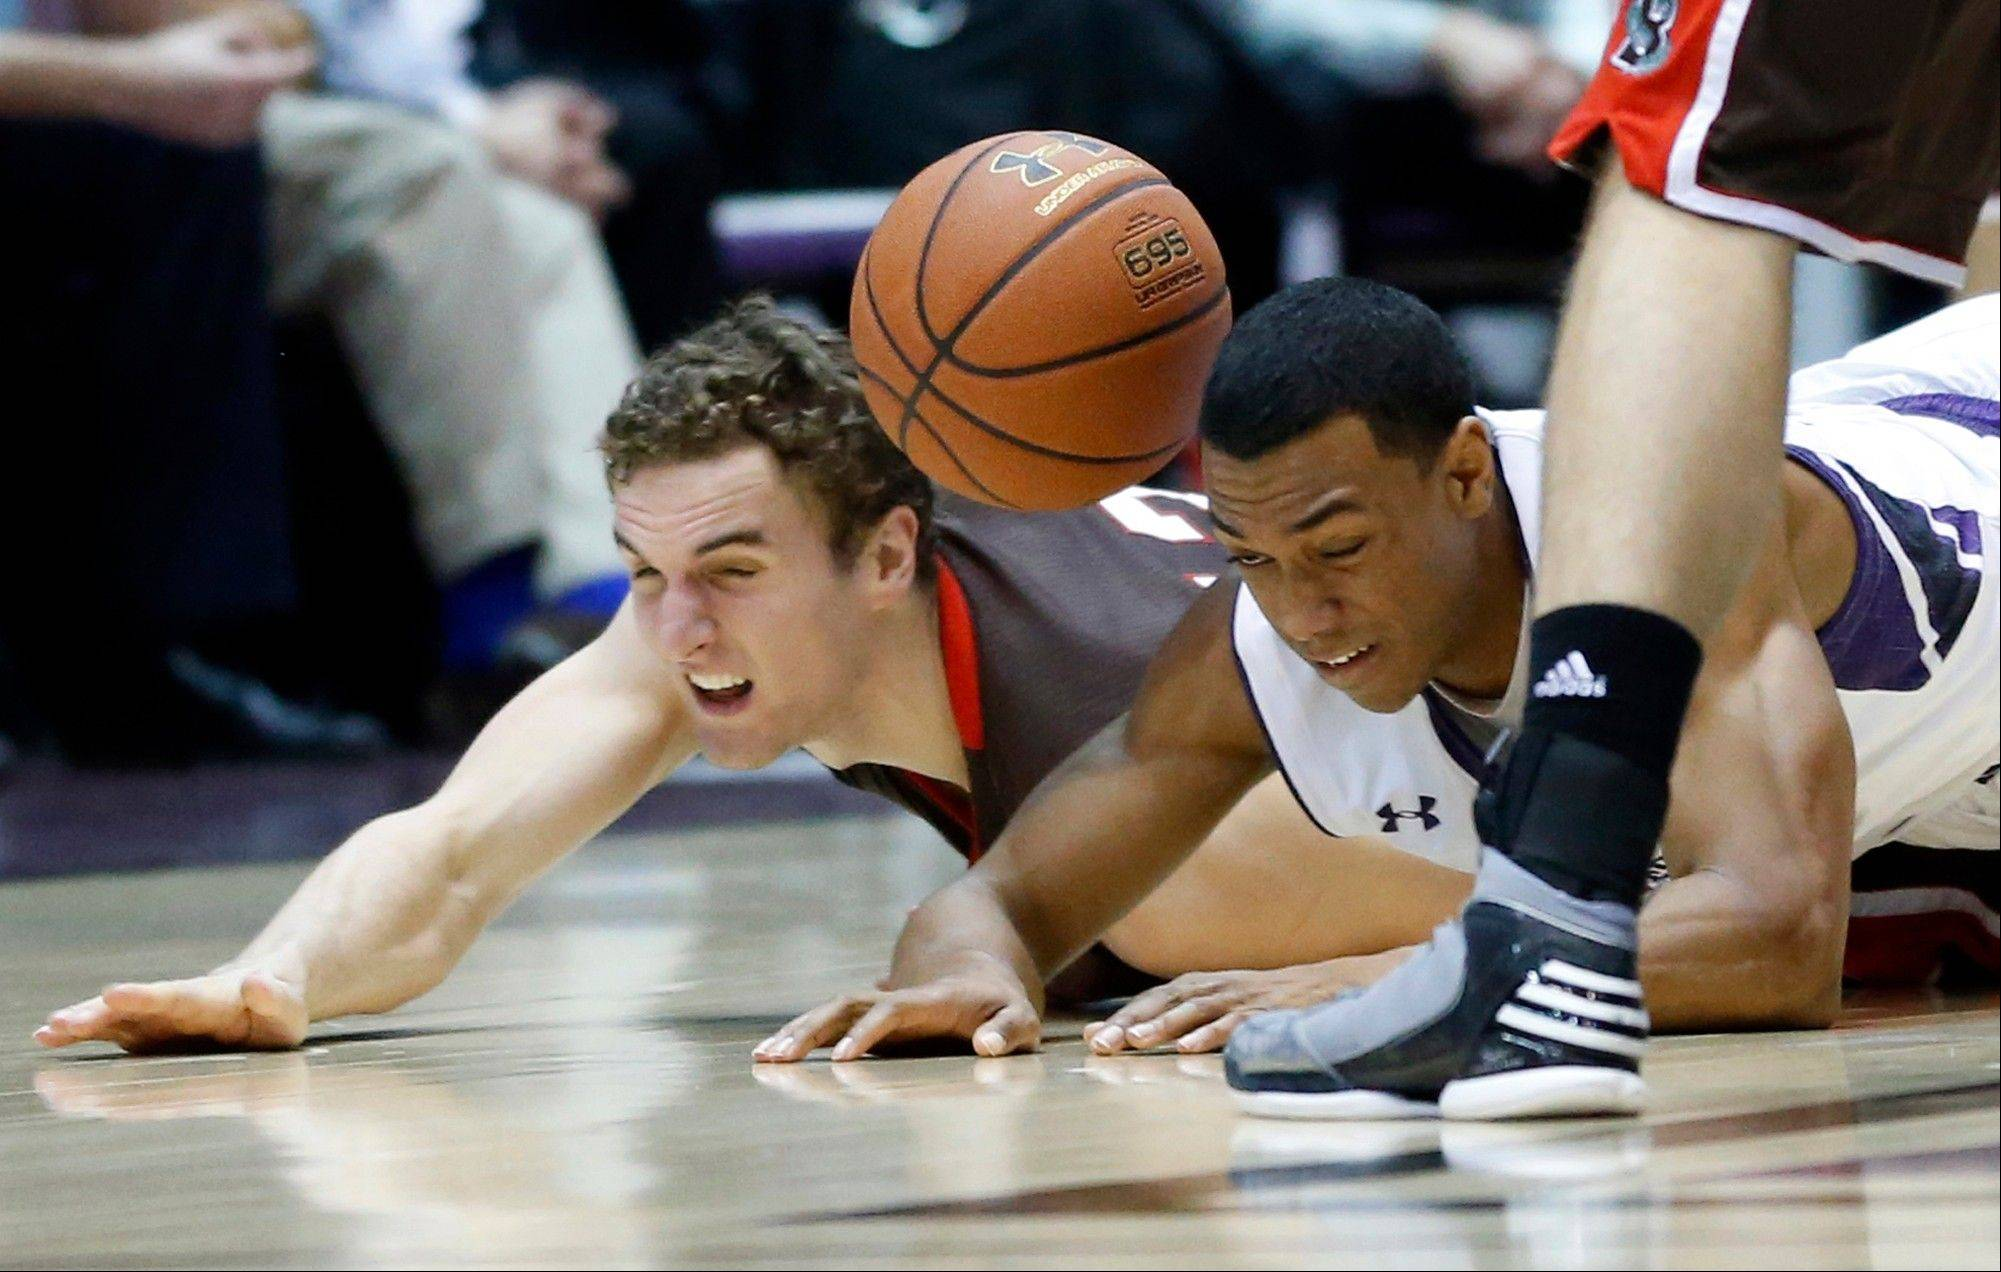 Northwestern guard James Montgomery III, right, and Brown forward Tyler Ponticelli battle for a loose ball during the second half of an NCAA college basketball game in Evanston, Ill., Sunday, Dec. 23, 2012. Northwestern won 63-42.